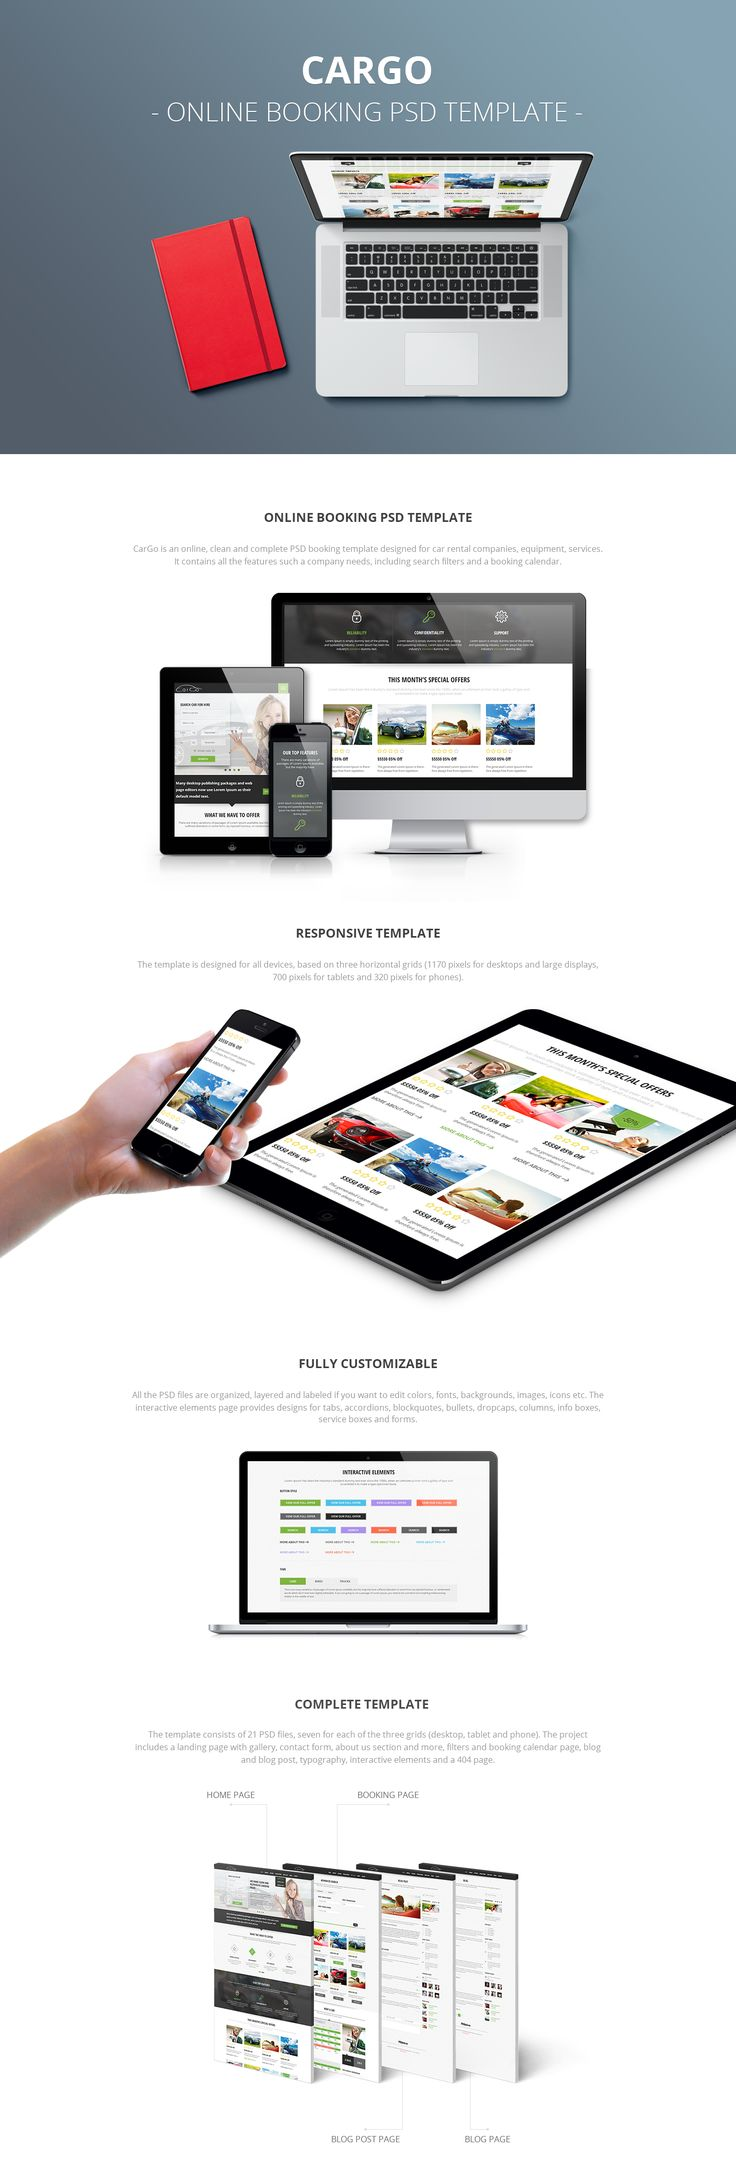 CarGo is a clean and complete booking PSD template ideal for cars, equipment, services and more.